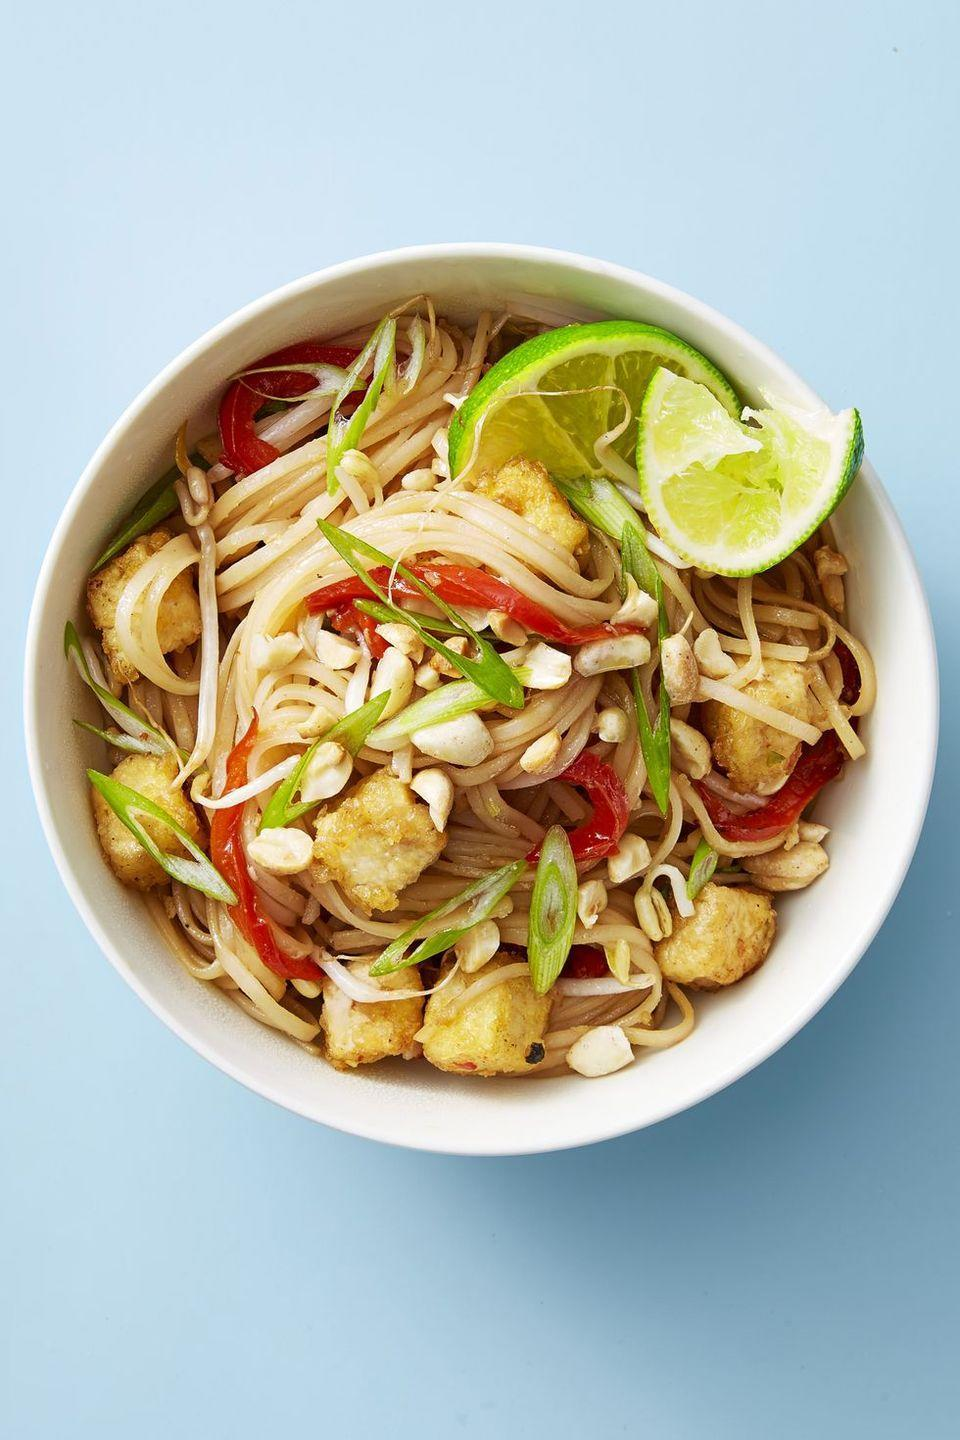 """<p>It's a lunch special classic, but making it at home is super easy — and piling on the tofu will make you forget all about takeout. This noodle dish is ready in just 30 minutes.</p><p><em><a href=""""https://www.goodhousekeeping.com/food-recipes/easy/a48188/tofu-pad-thai-recipe/"""" rel=""""nofollow noopener"""" target=""""_blank"""" data-ylk=""""slk:Get the recipe for Tofu Pad Thai »"""" class=""""link rapid-noclick-resp"""">Get the recipe for Tofu Pad Thai »</a></em></p>"""